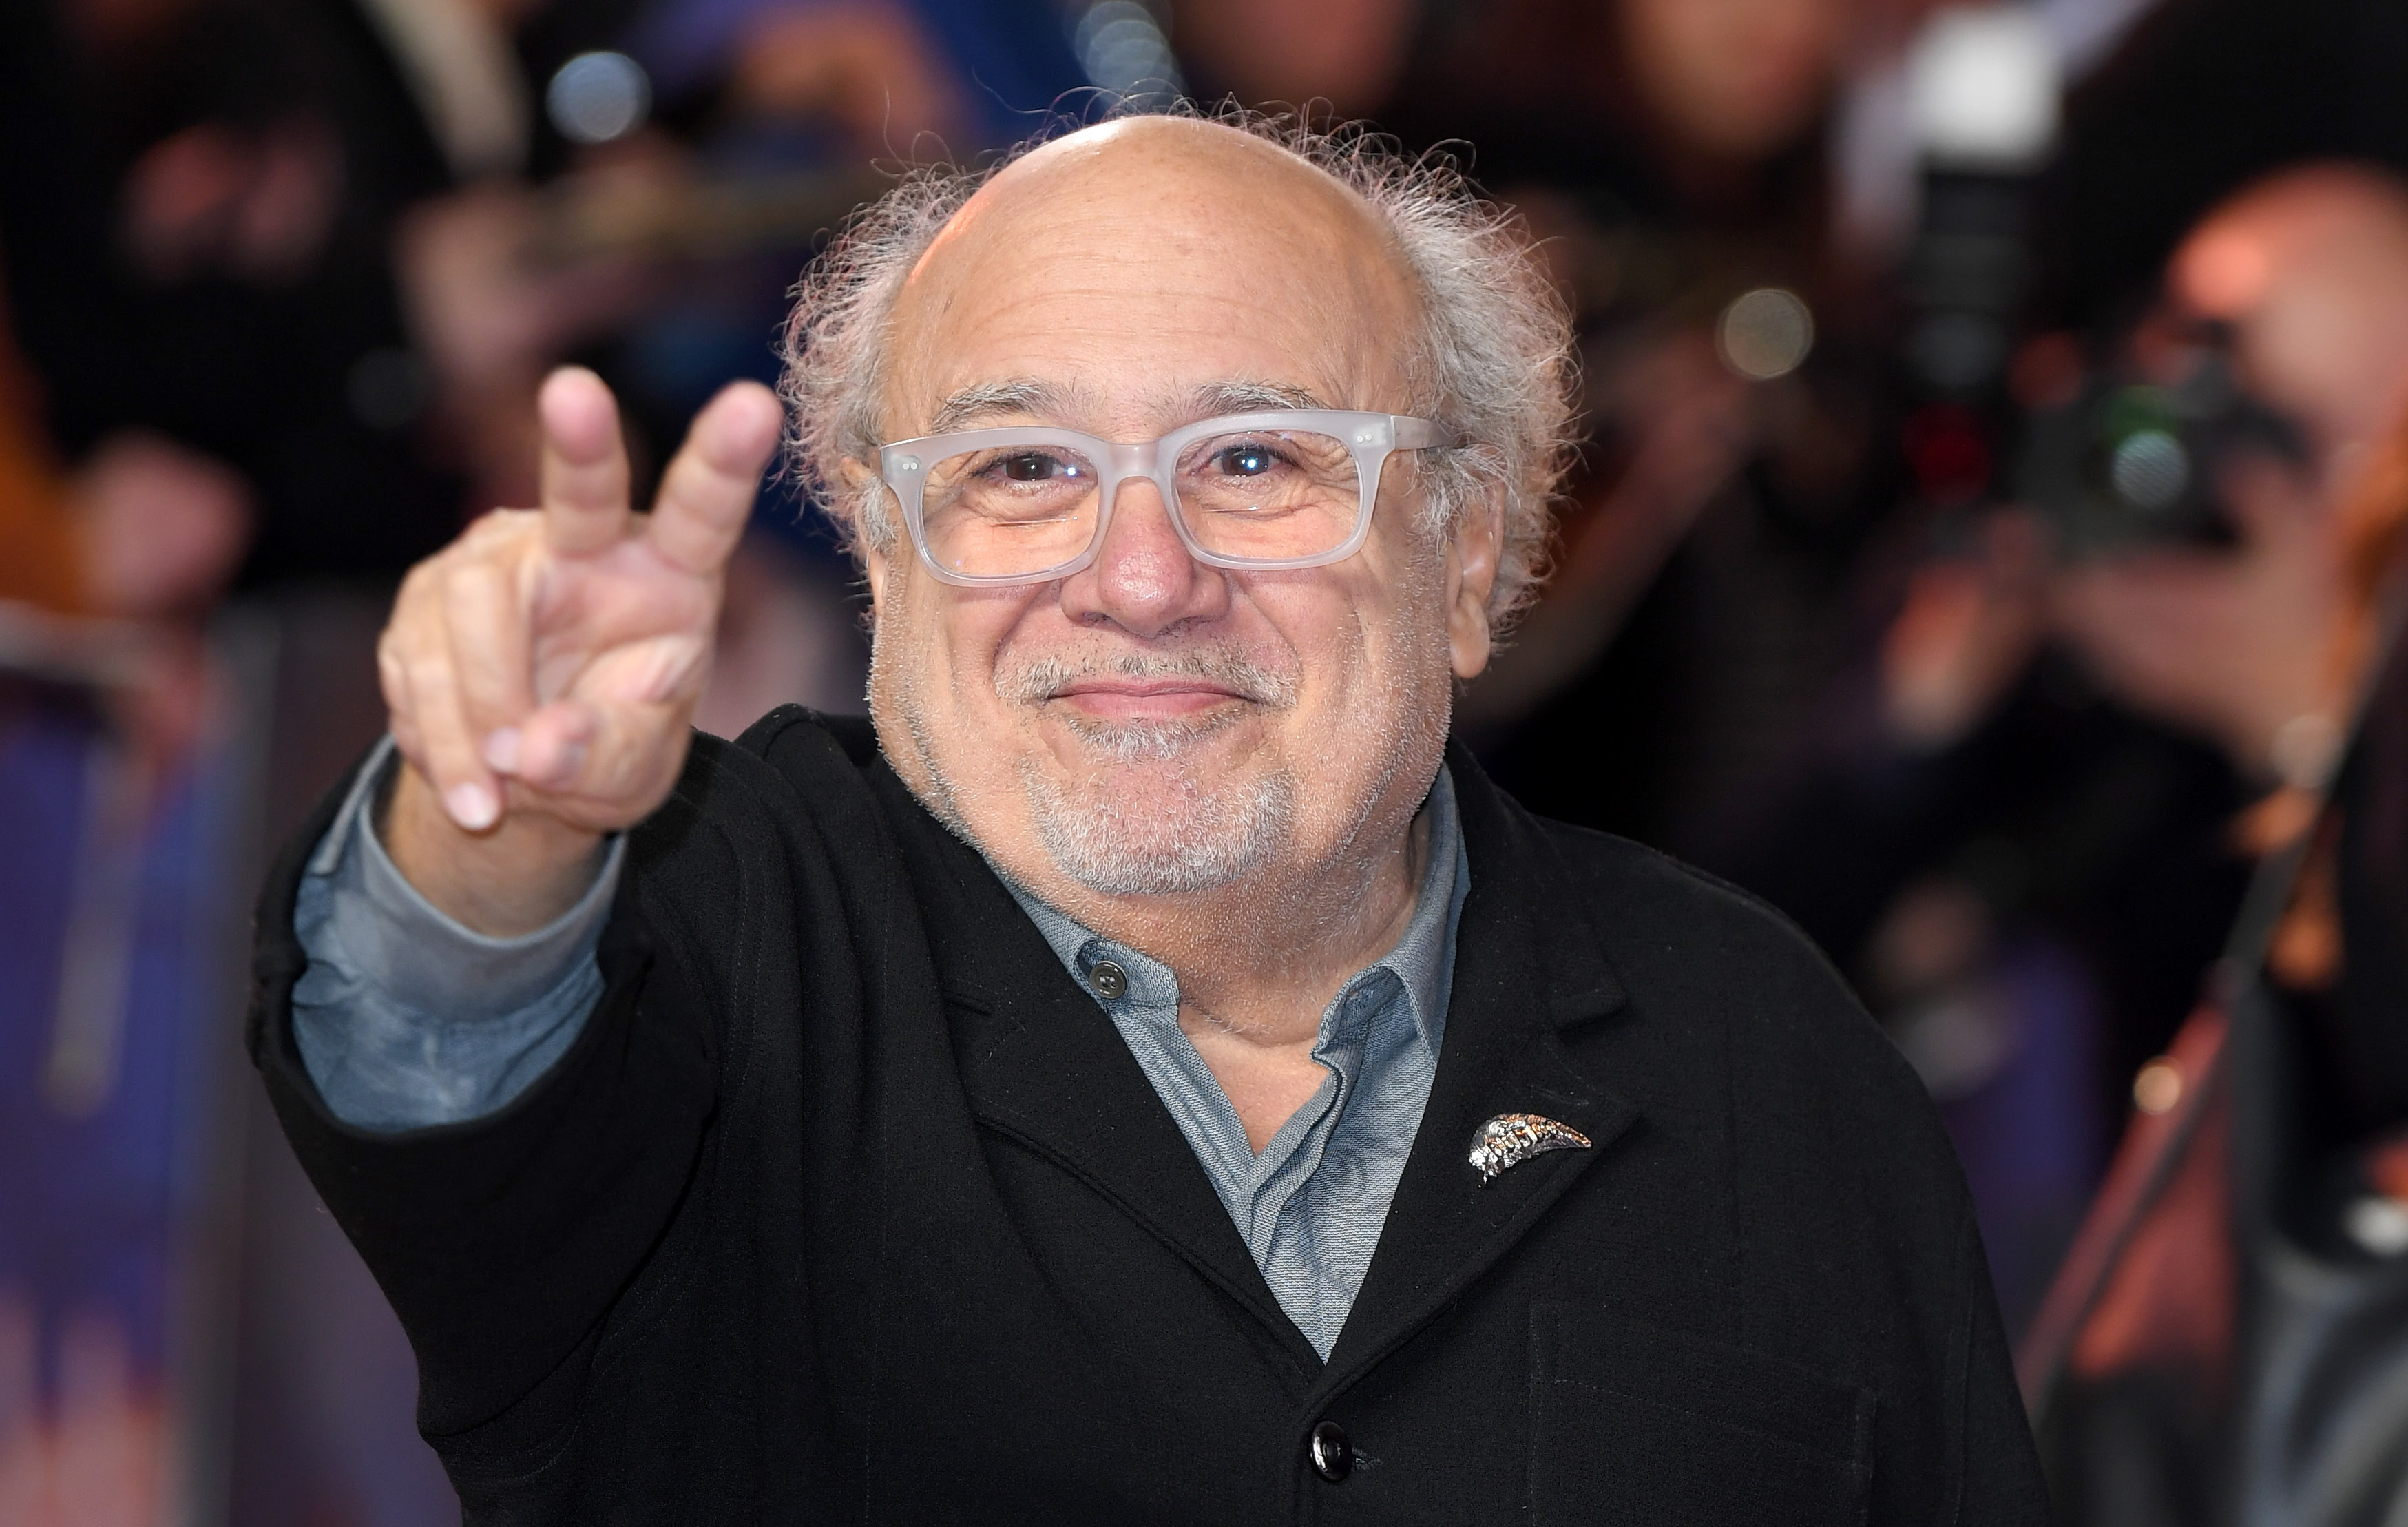 Danny DeVito briefly lost his Twitter verification. But it wasn't over his Nabisco post.